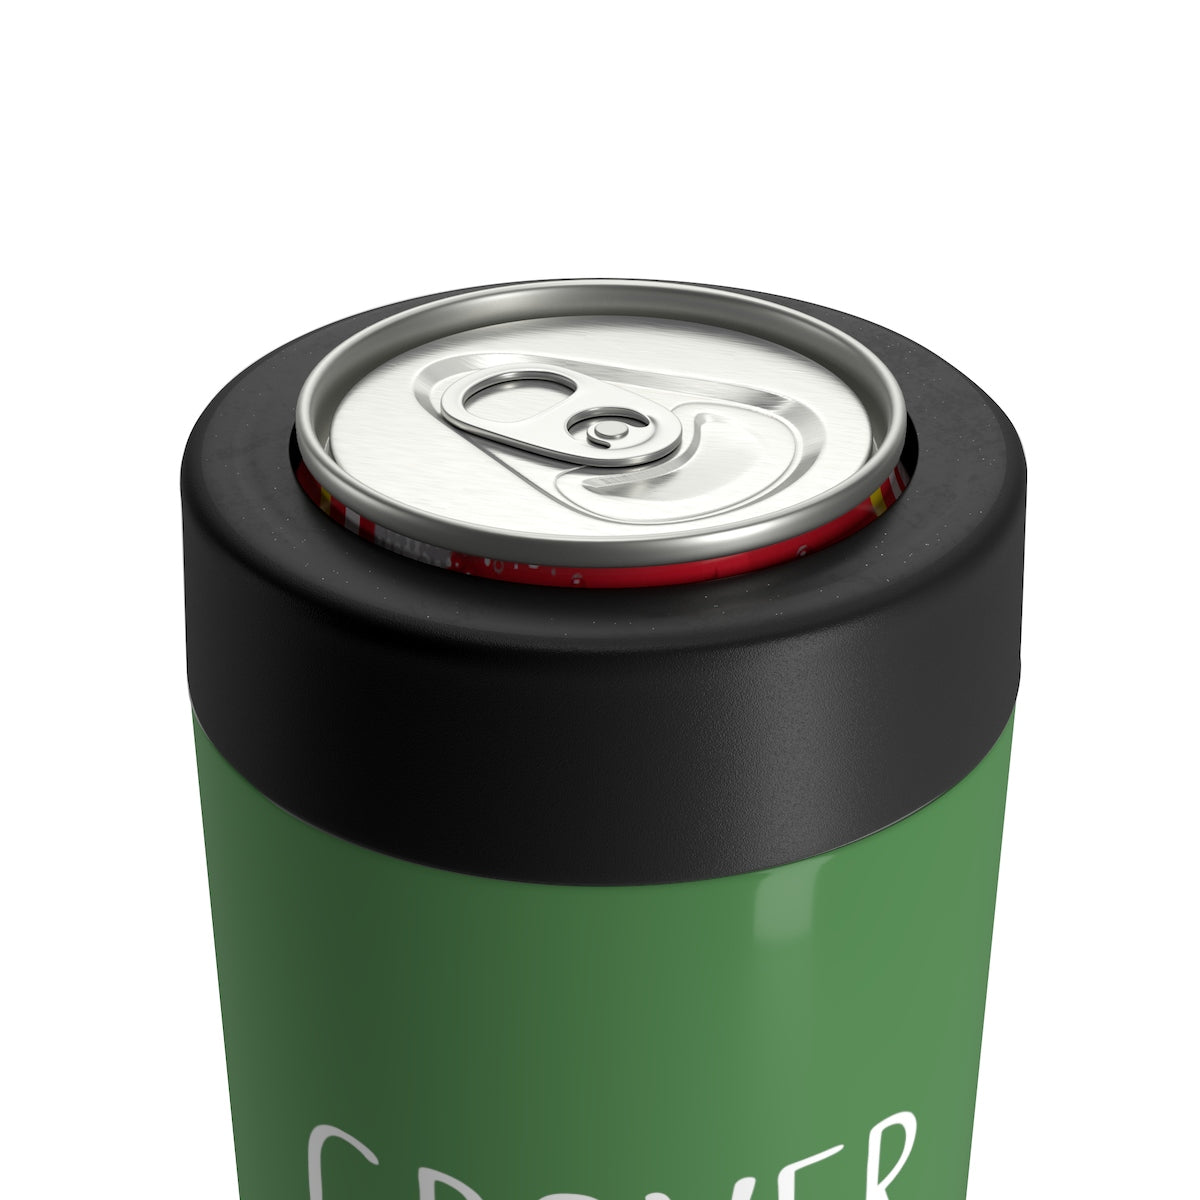 Grover Can Holder: Green